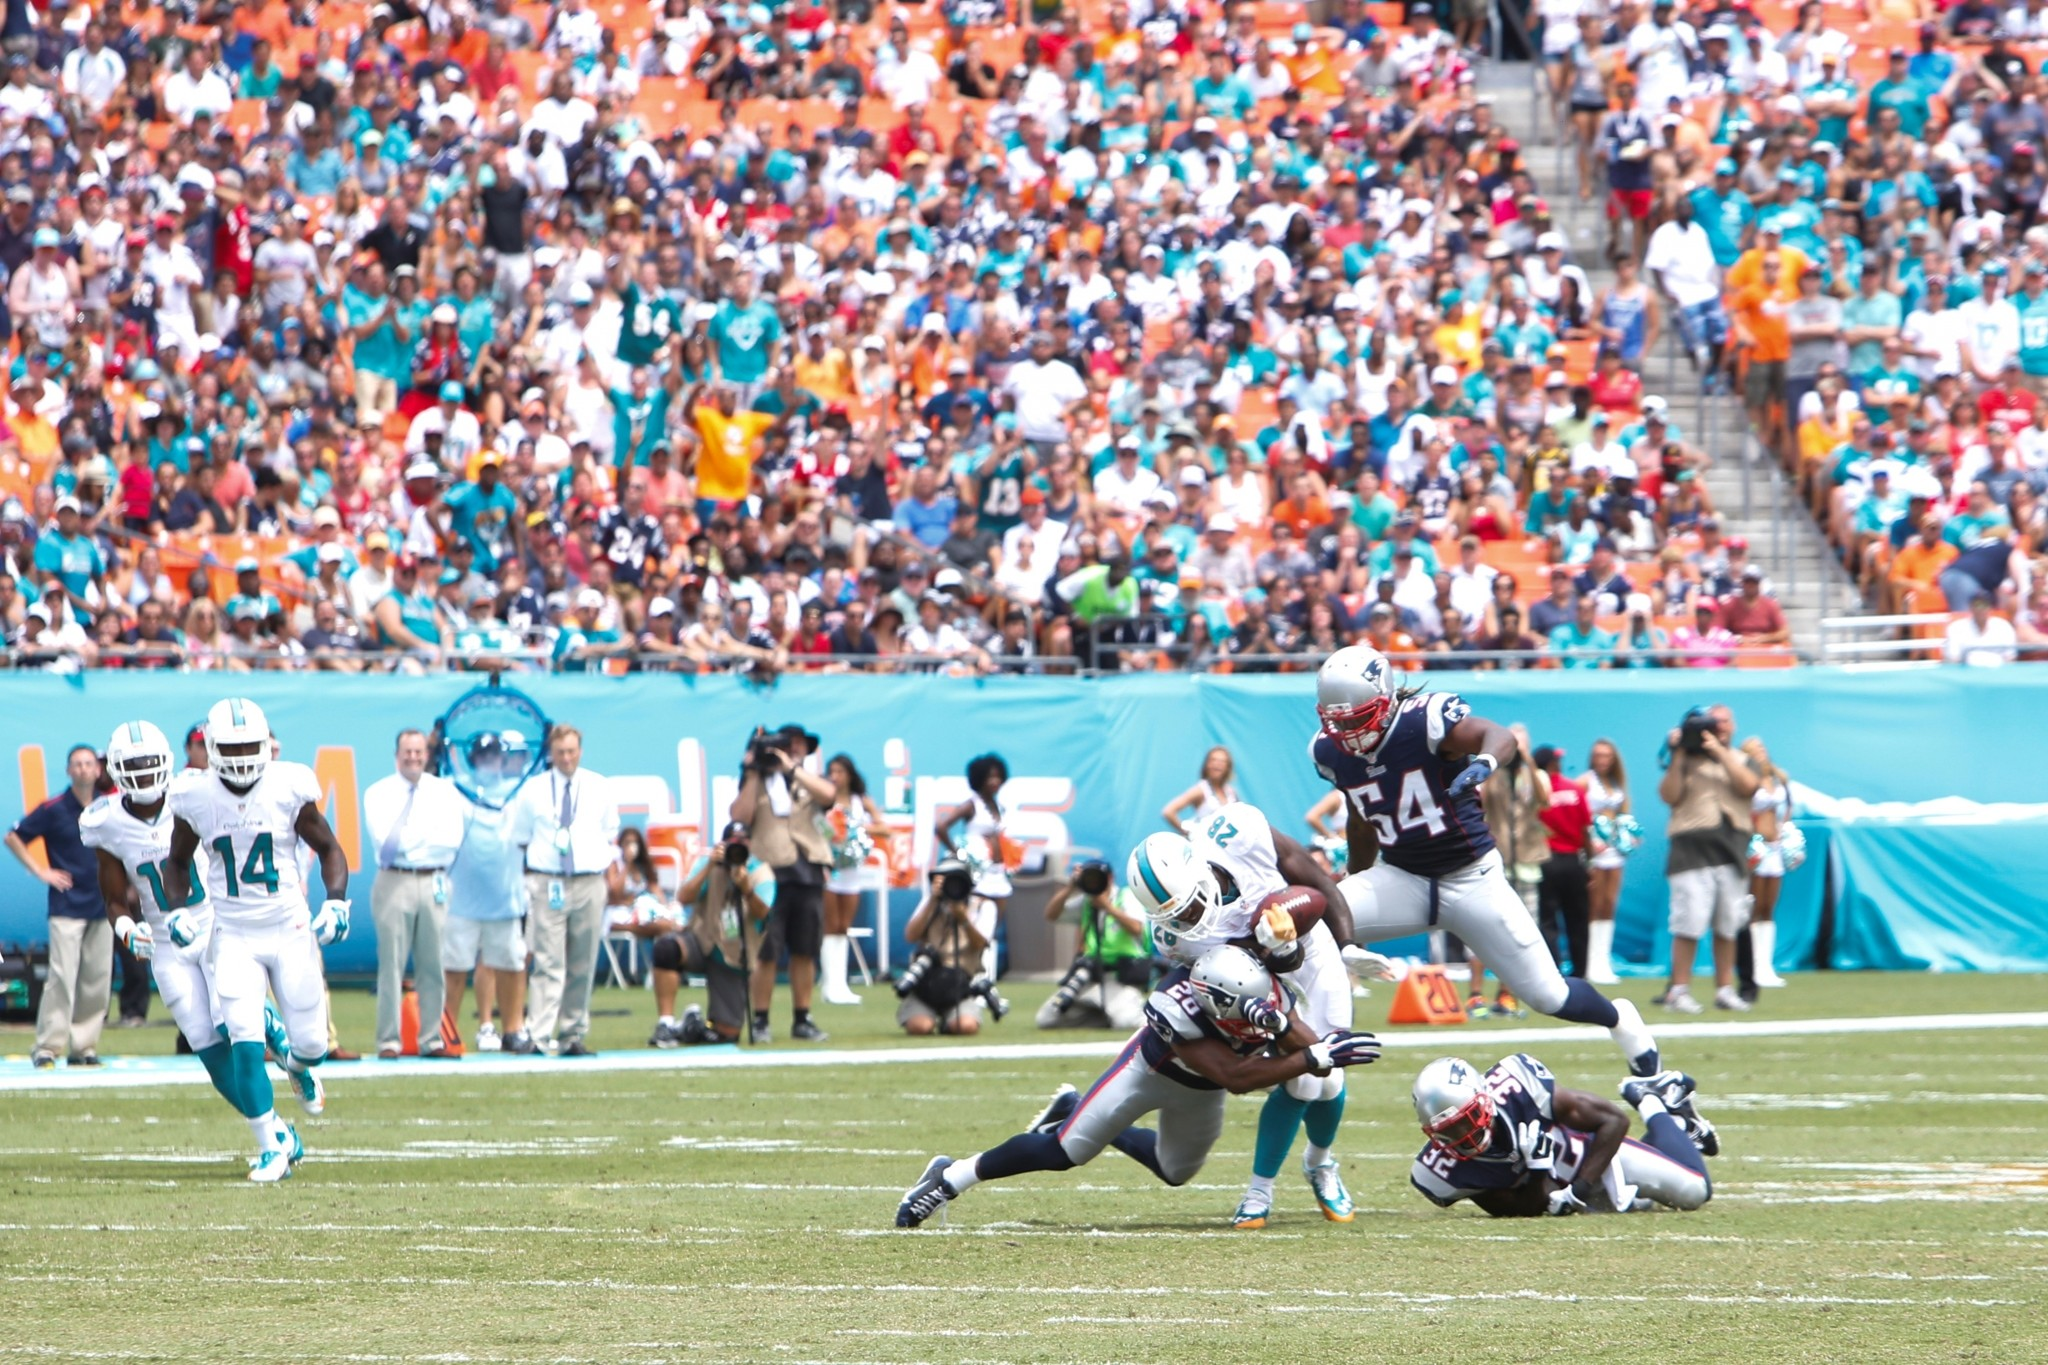 miami dolphins computer wallpaper backgrounds